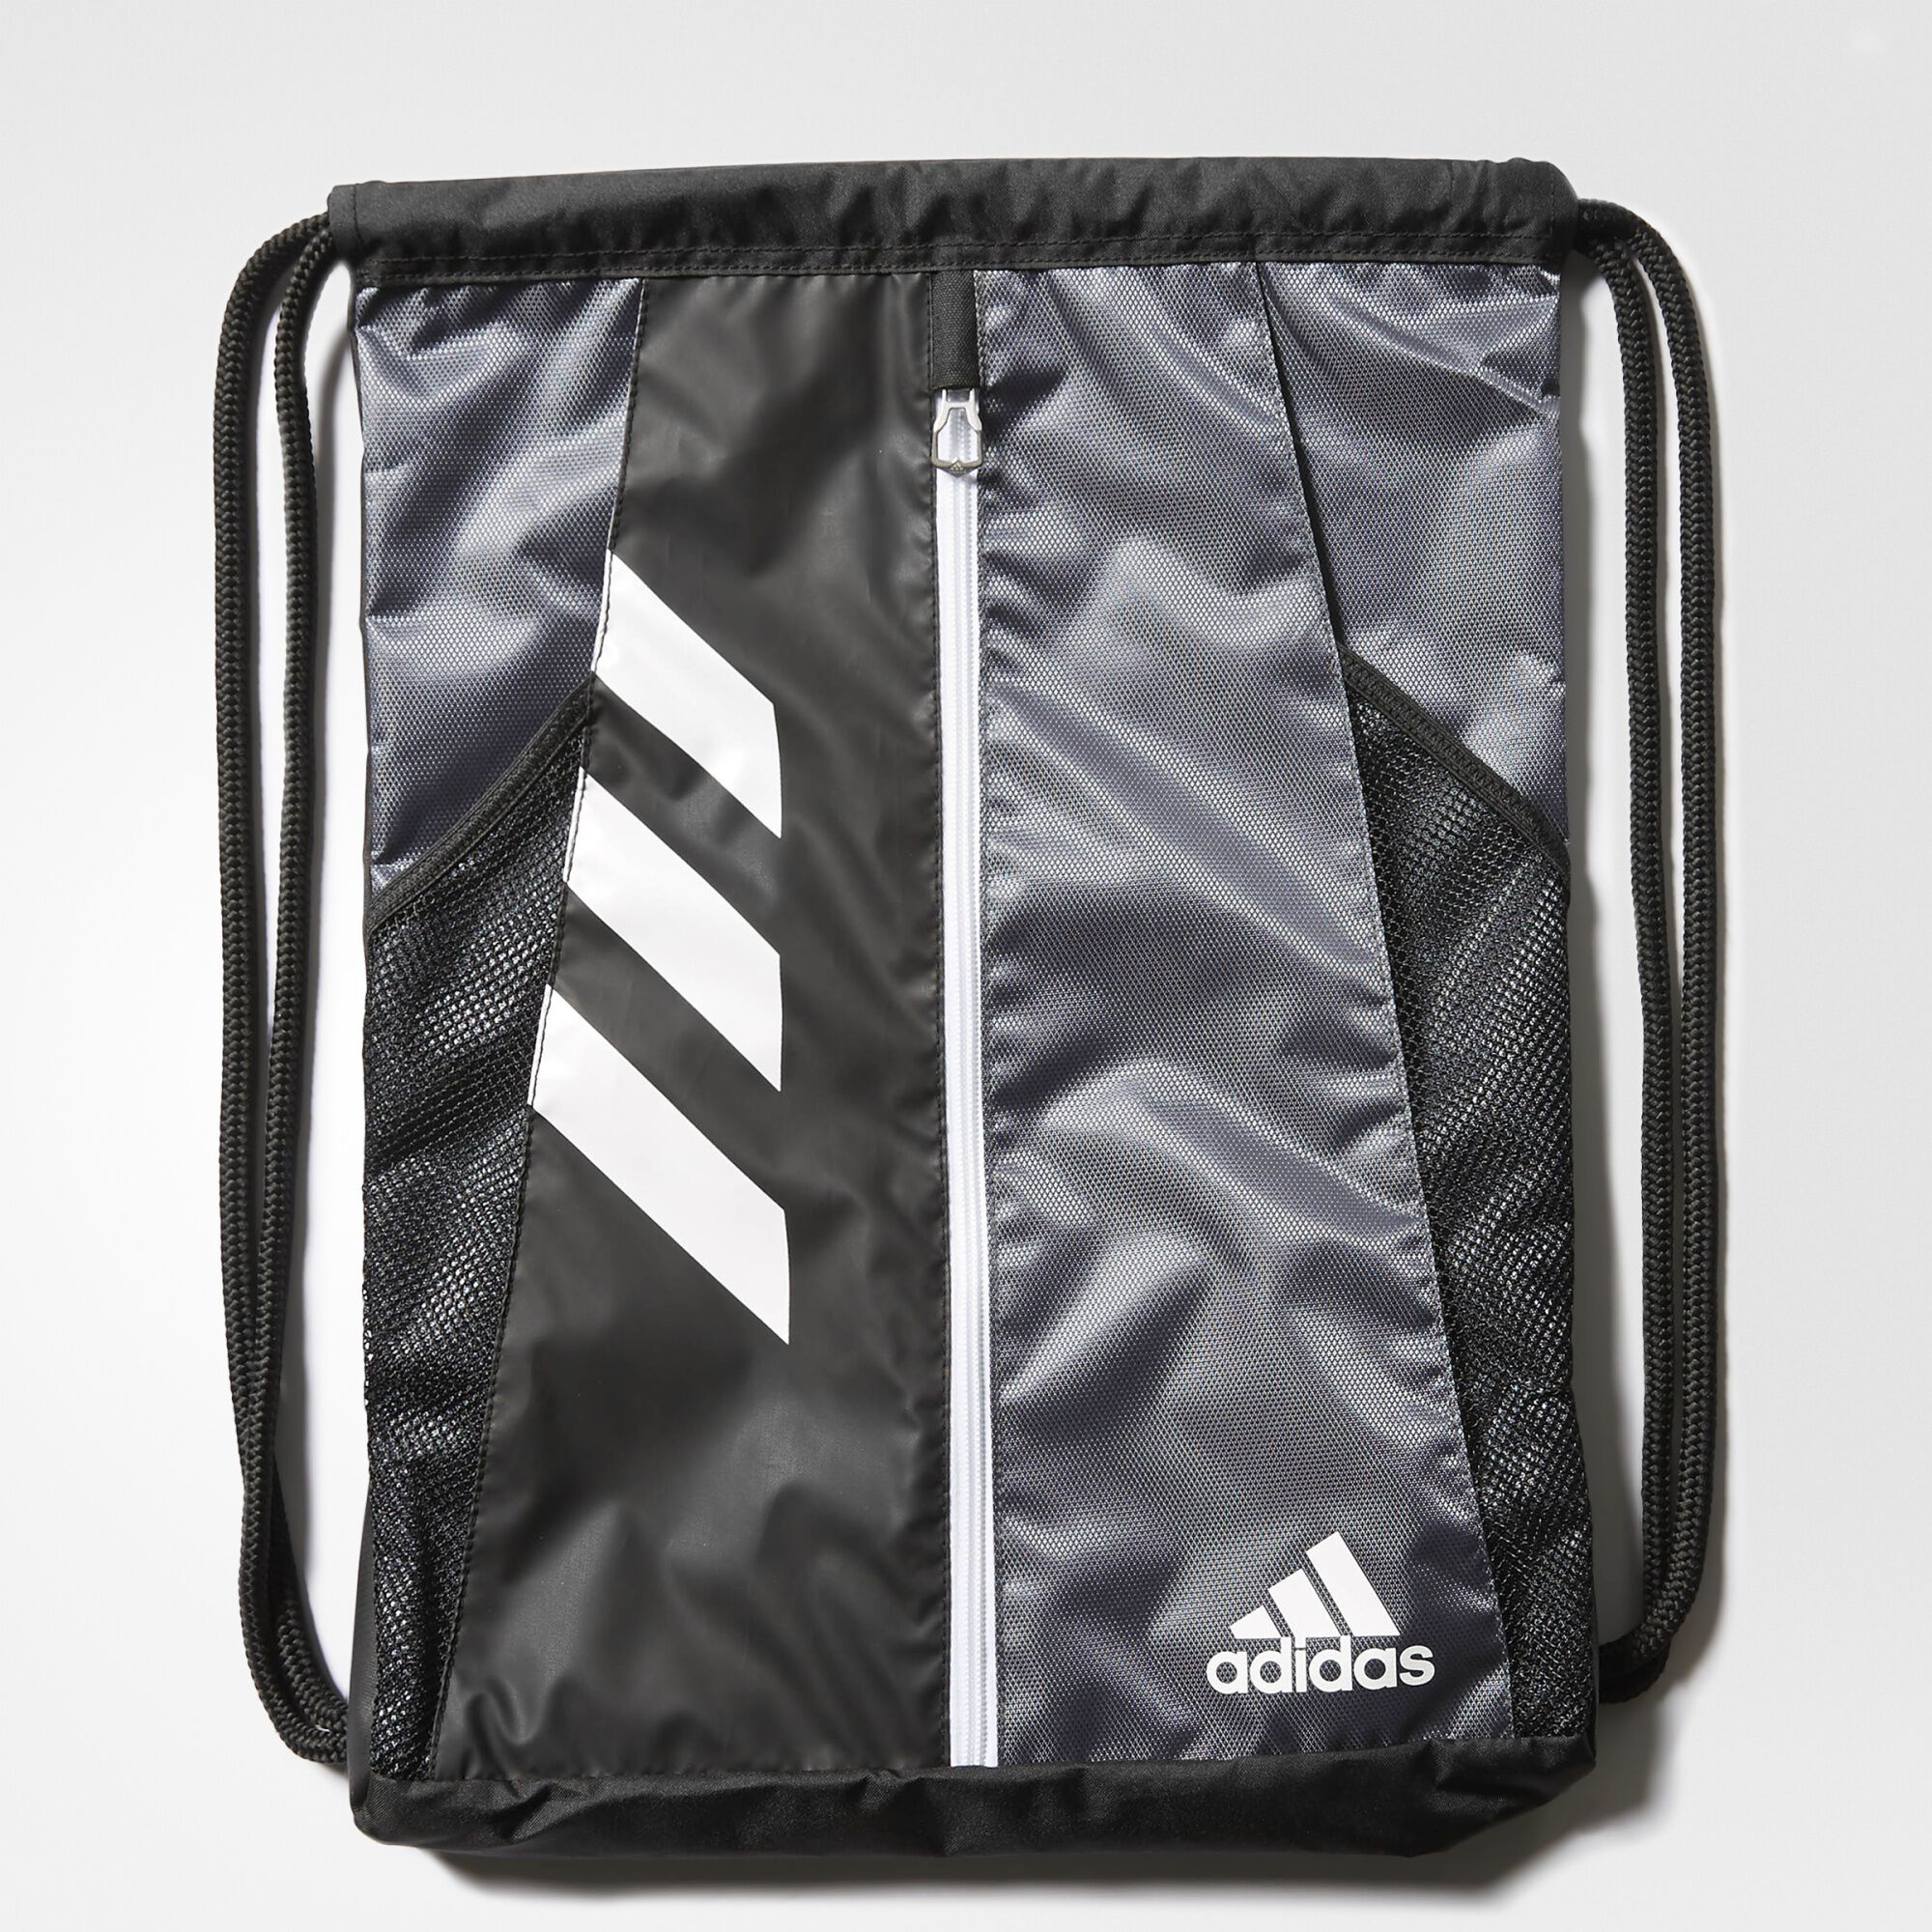 Buy adidas sackpack   OFF55% Discounted b3944e4d8e